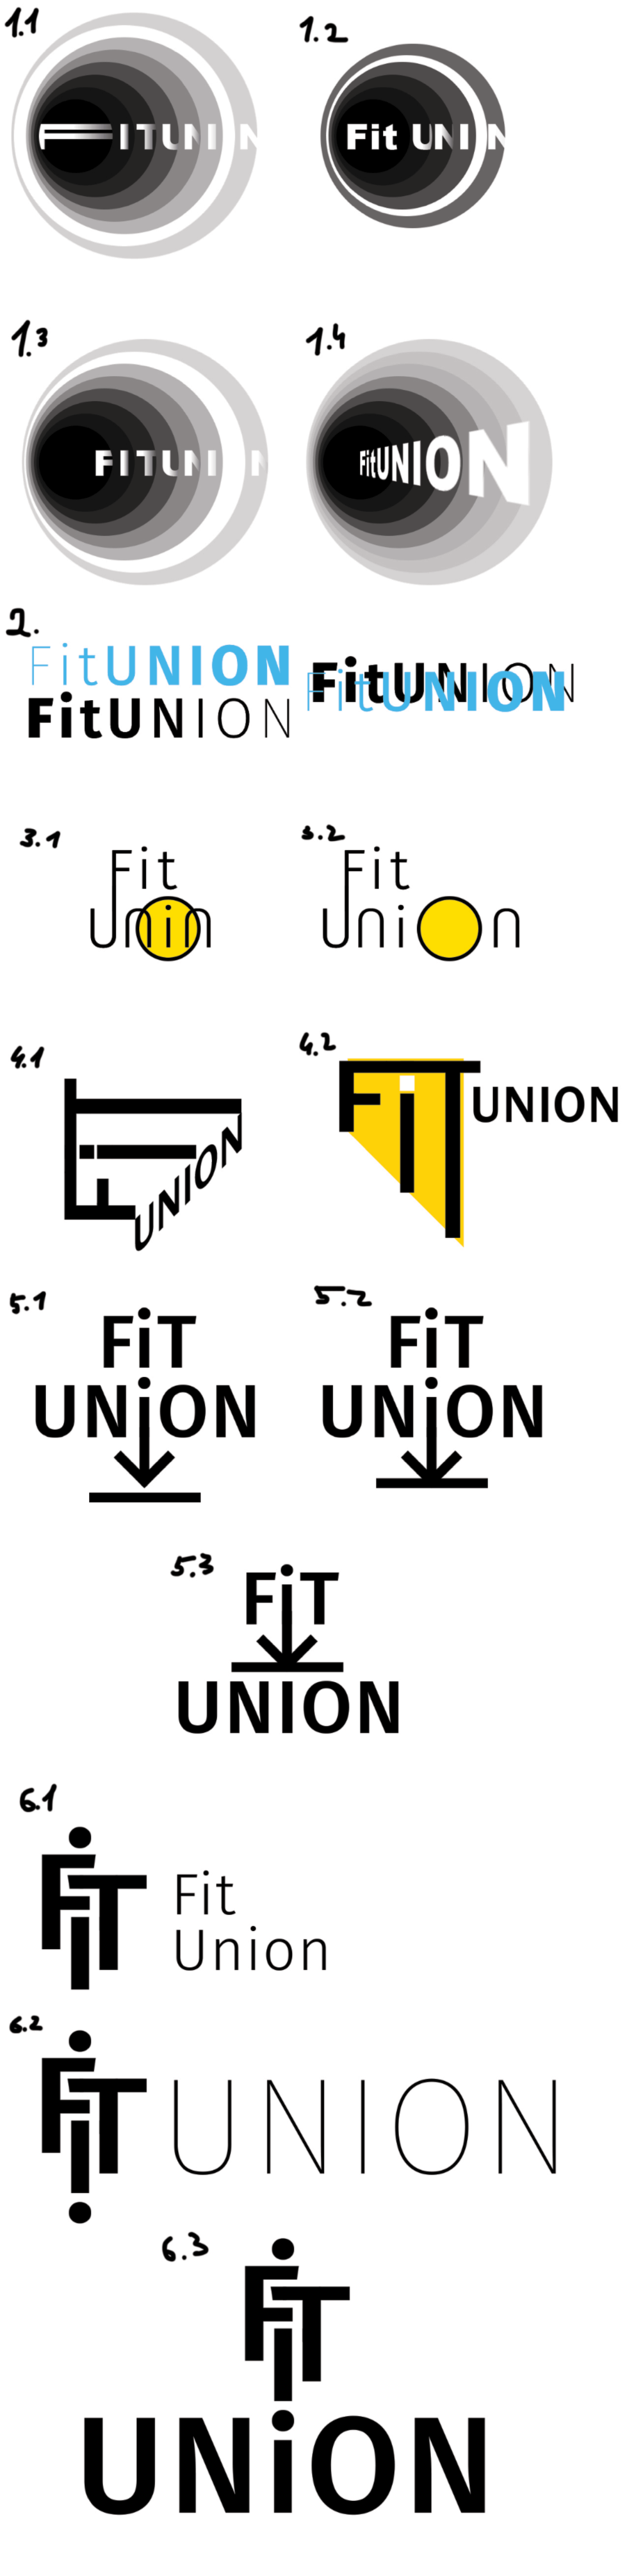 fitunion process 07